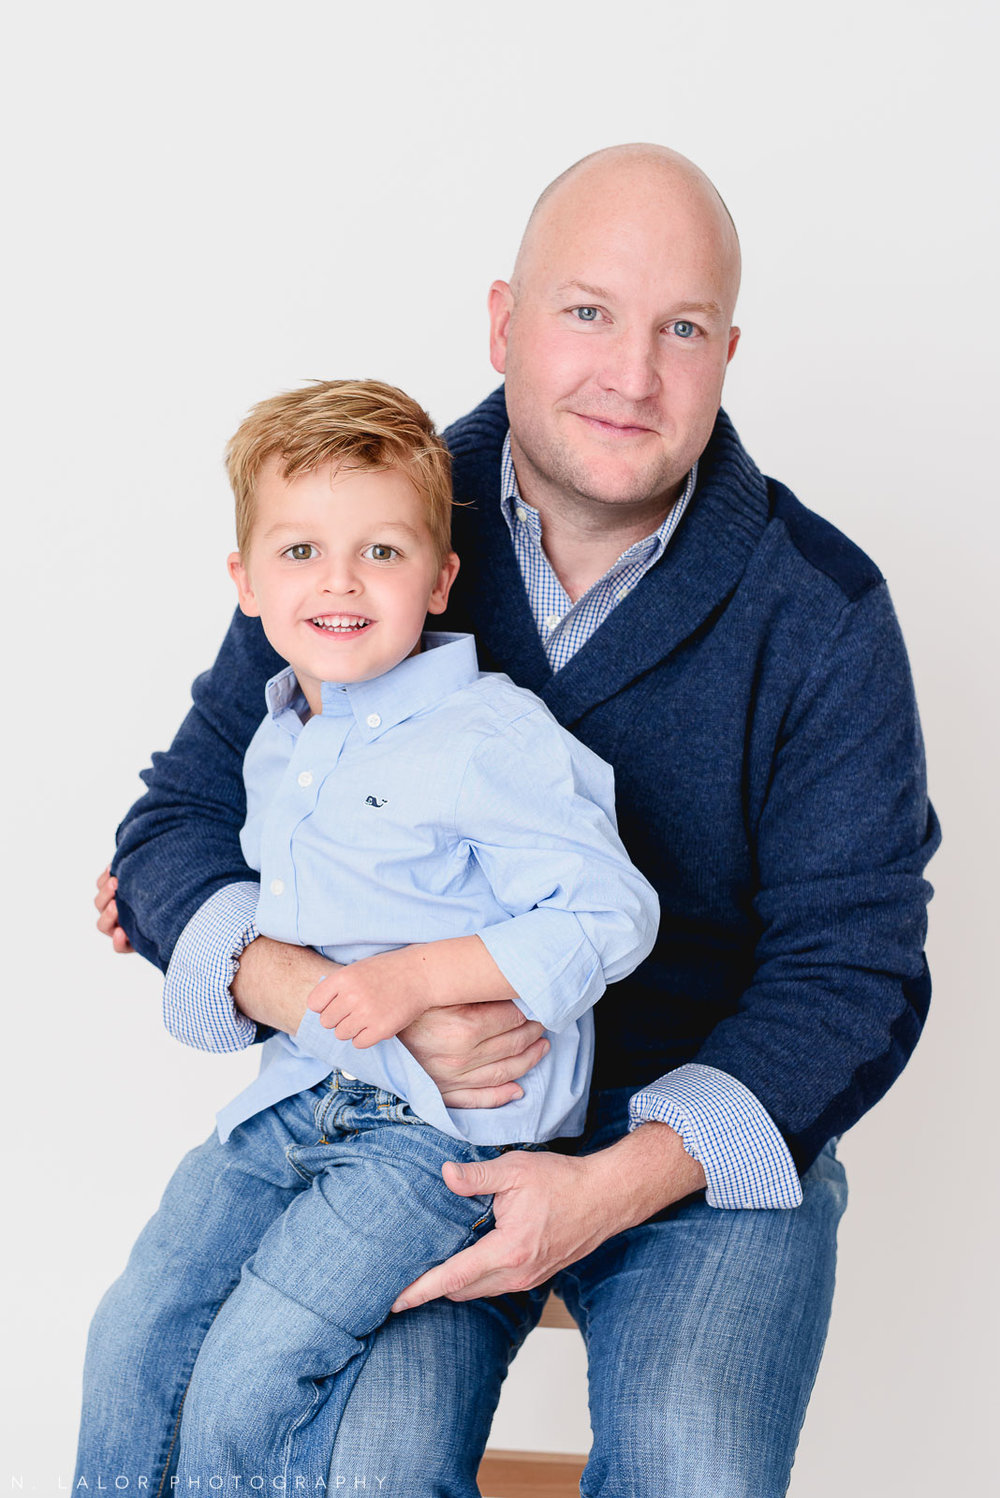 Dad with his son. Studio photo session with N. Lalor Photography. Greenwich, Connecticut.